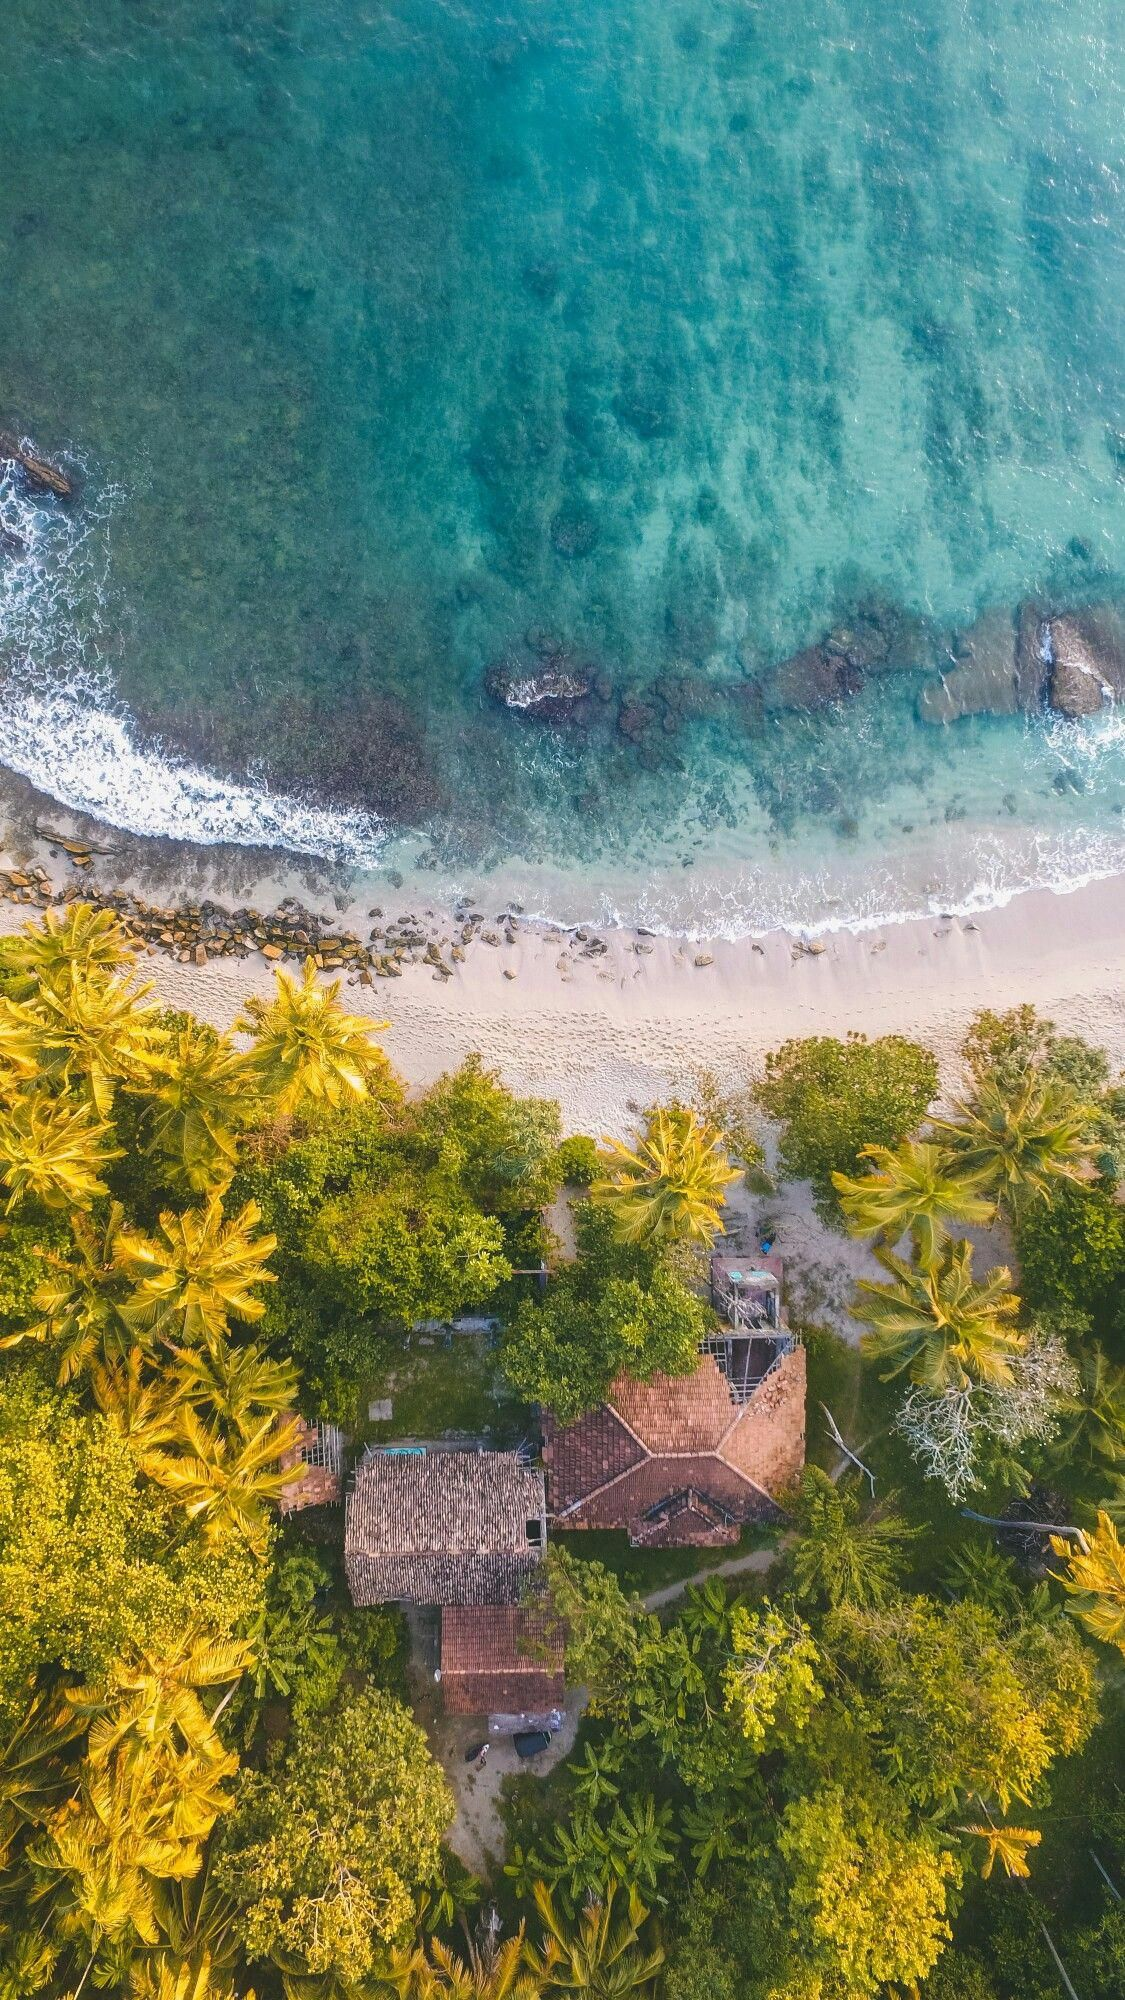 Drone View From Above The Ocean Palm Trees Droneswithacamera Birds Eye Drone Photography Aerial View Drone aerial shot trees beach coast